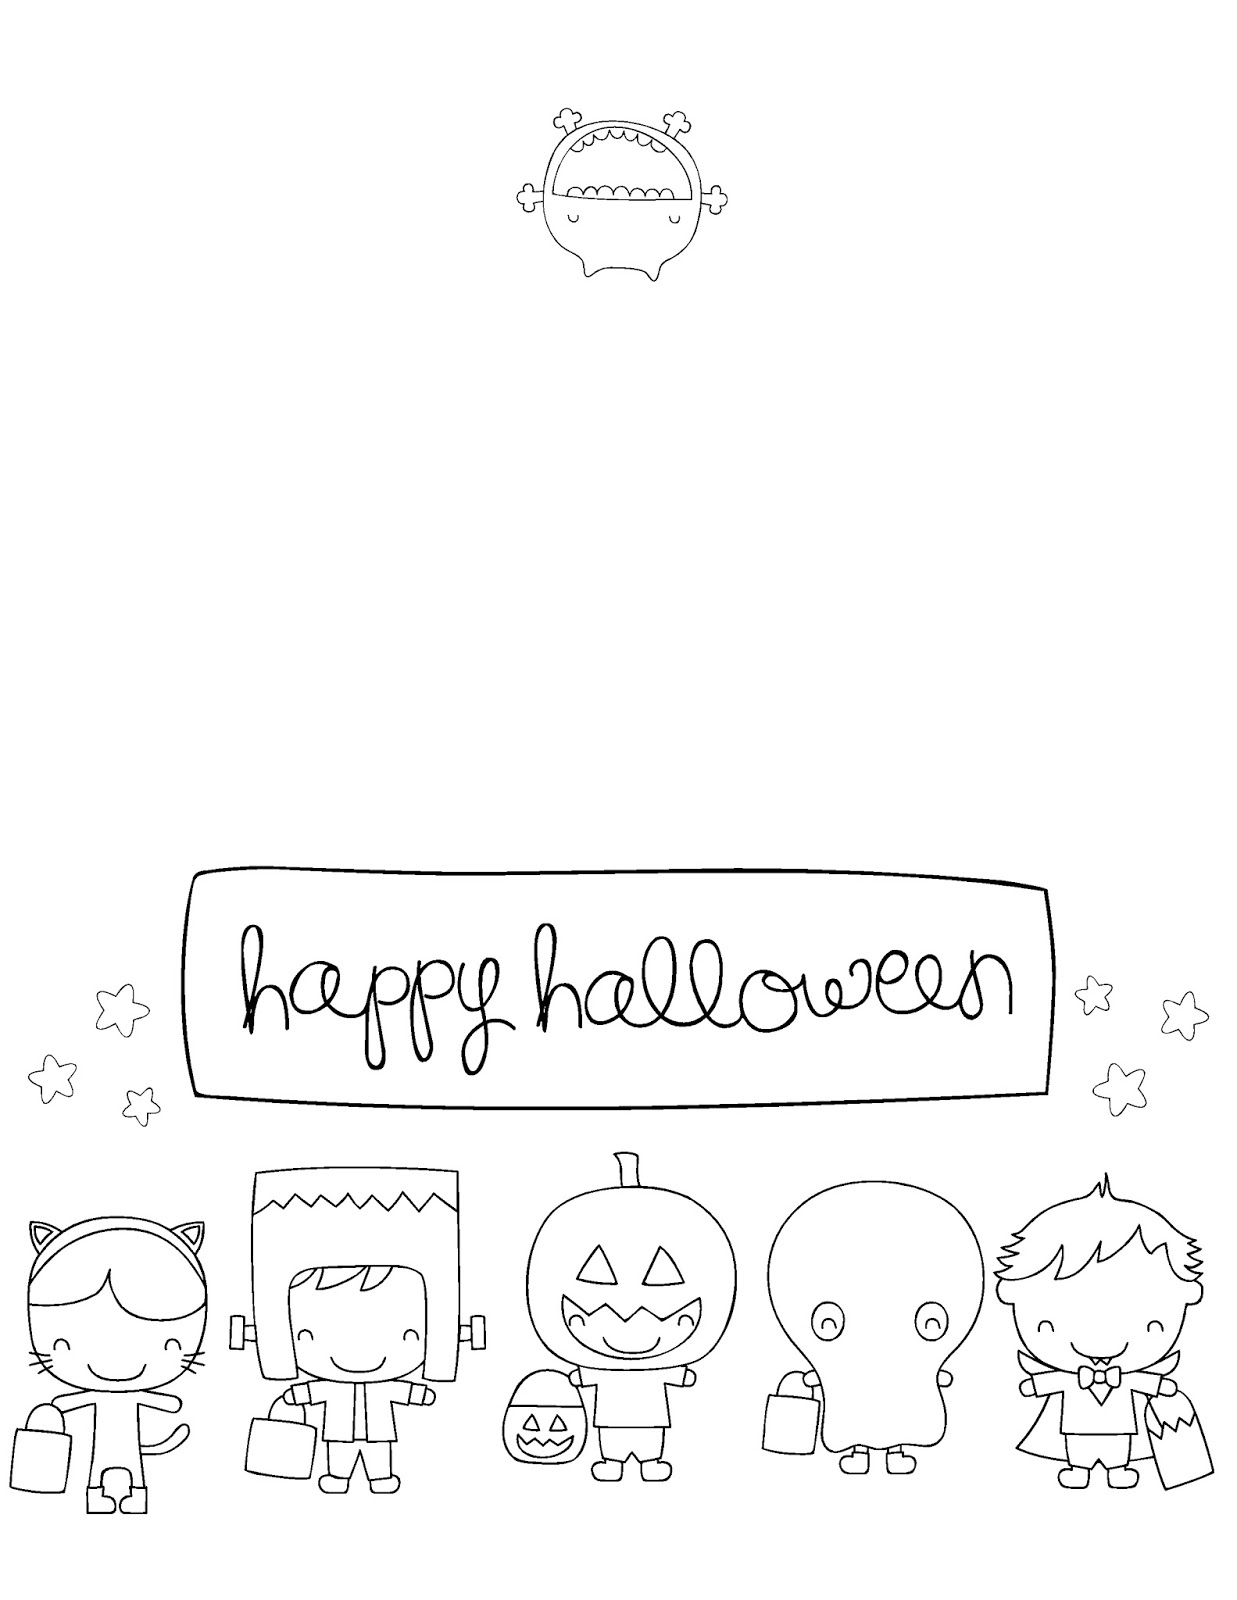 Printable Halloween Cards To Color For Free | Download Them Or Print - Printable Halloween Cards To Color For Free